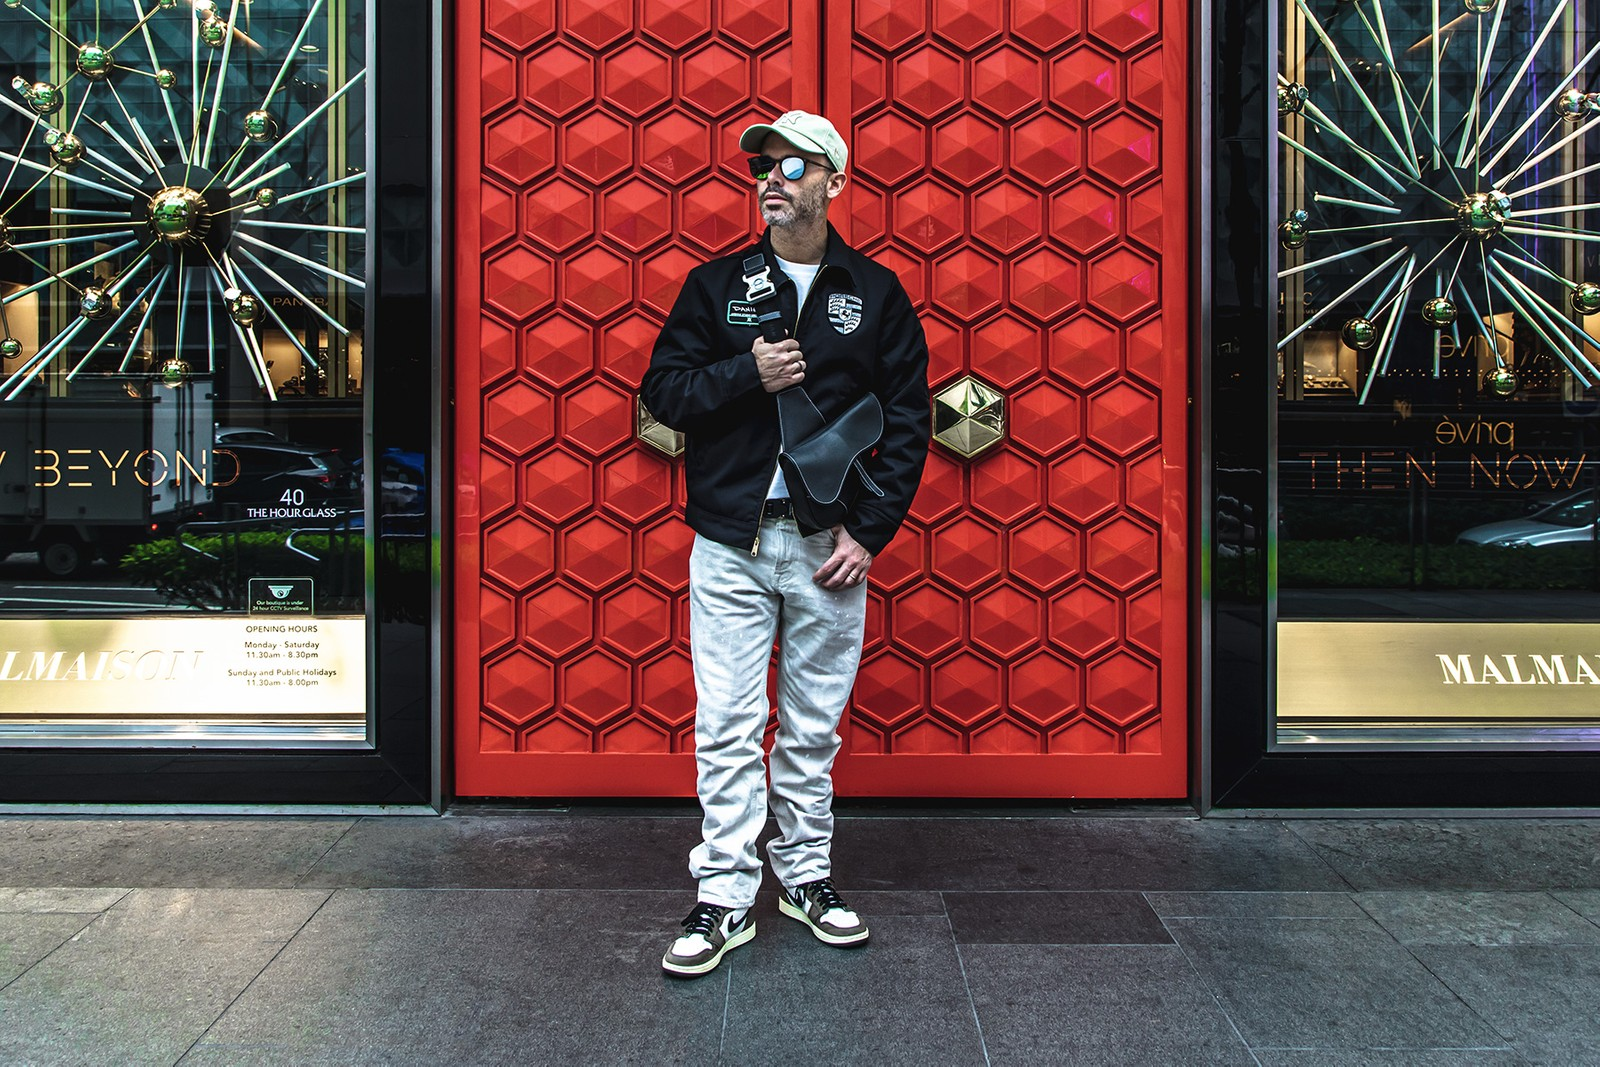 Daniel Arsham Streetsnaps Style samuel ross a cold wall eyefunny readymade yuta Yuta Hosokawa porsche travis scott air jordan 1 nike hidden ny george bamford audemars piguet kim jones dior interview the hour glass